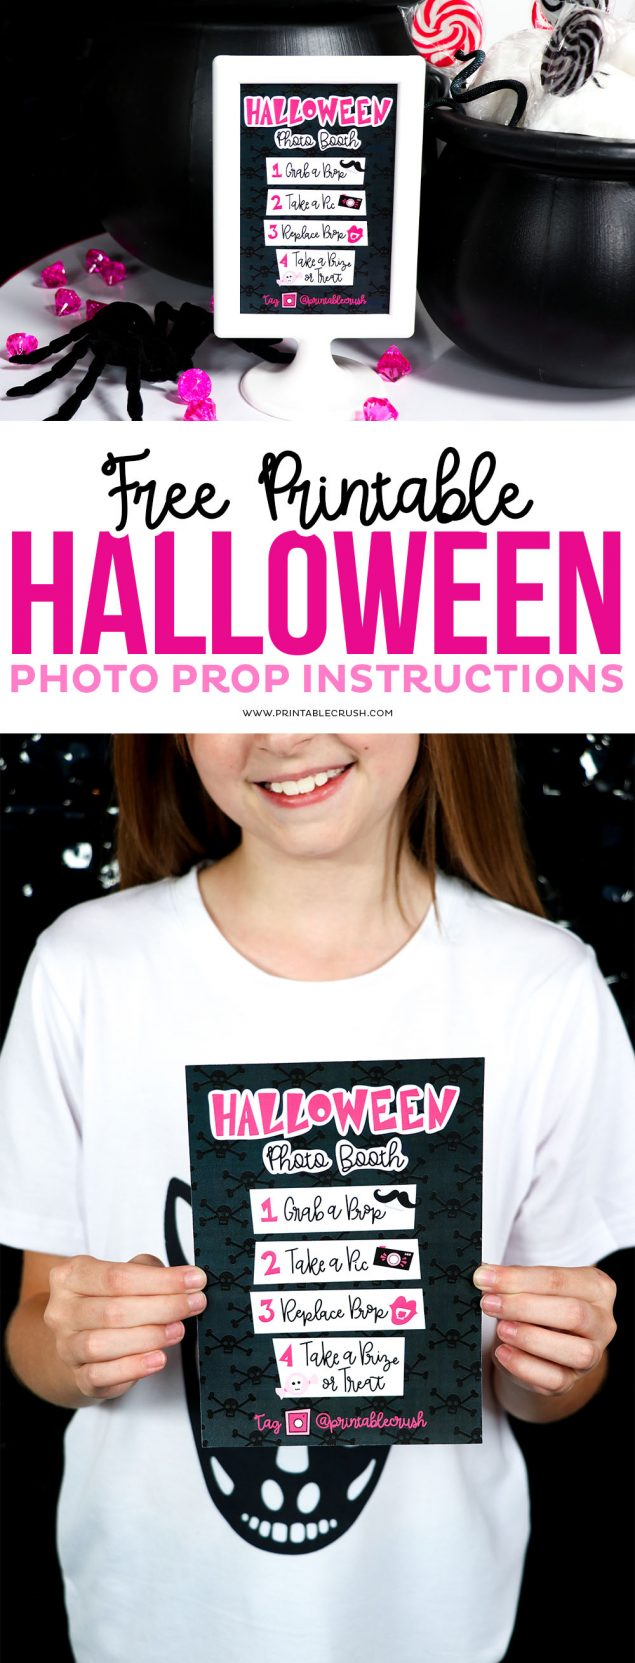 Free Printable Halloween Photo Prop Instructions for a Photo Booth!